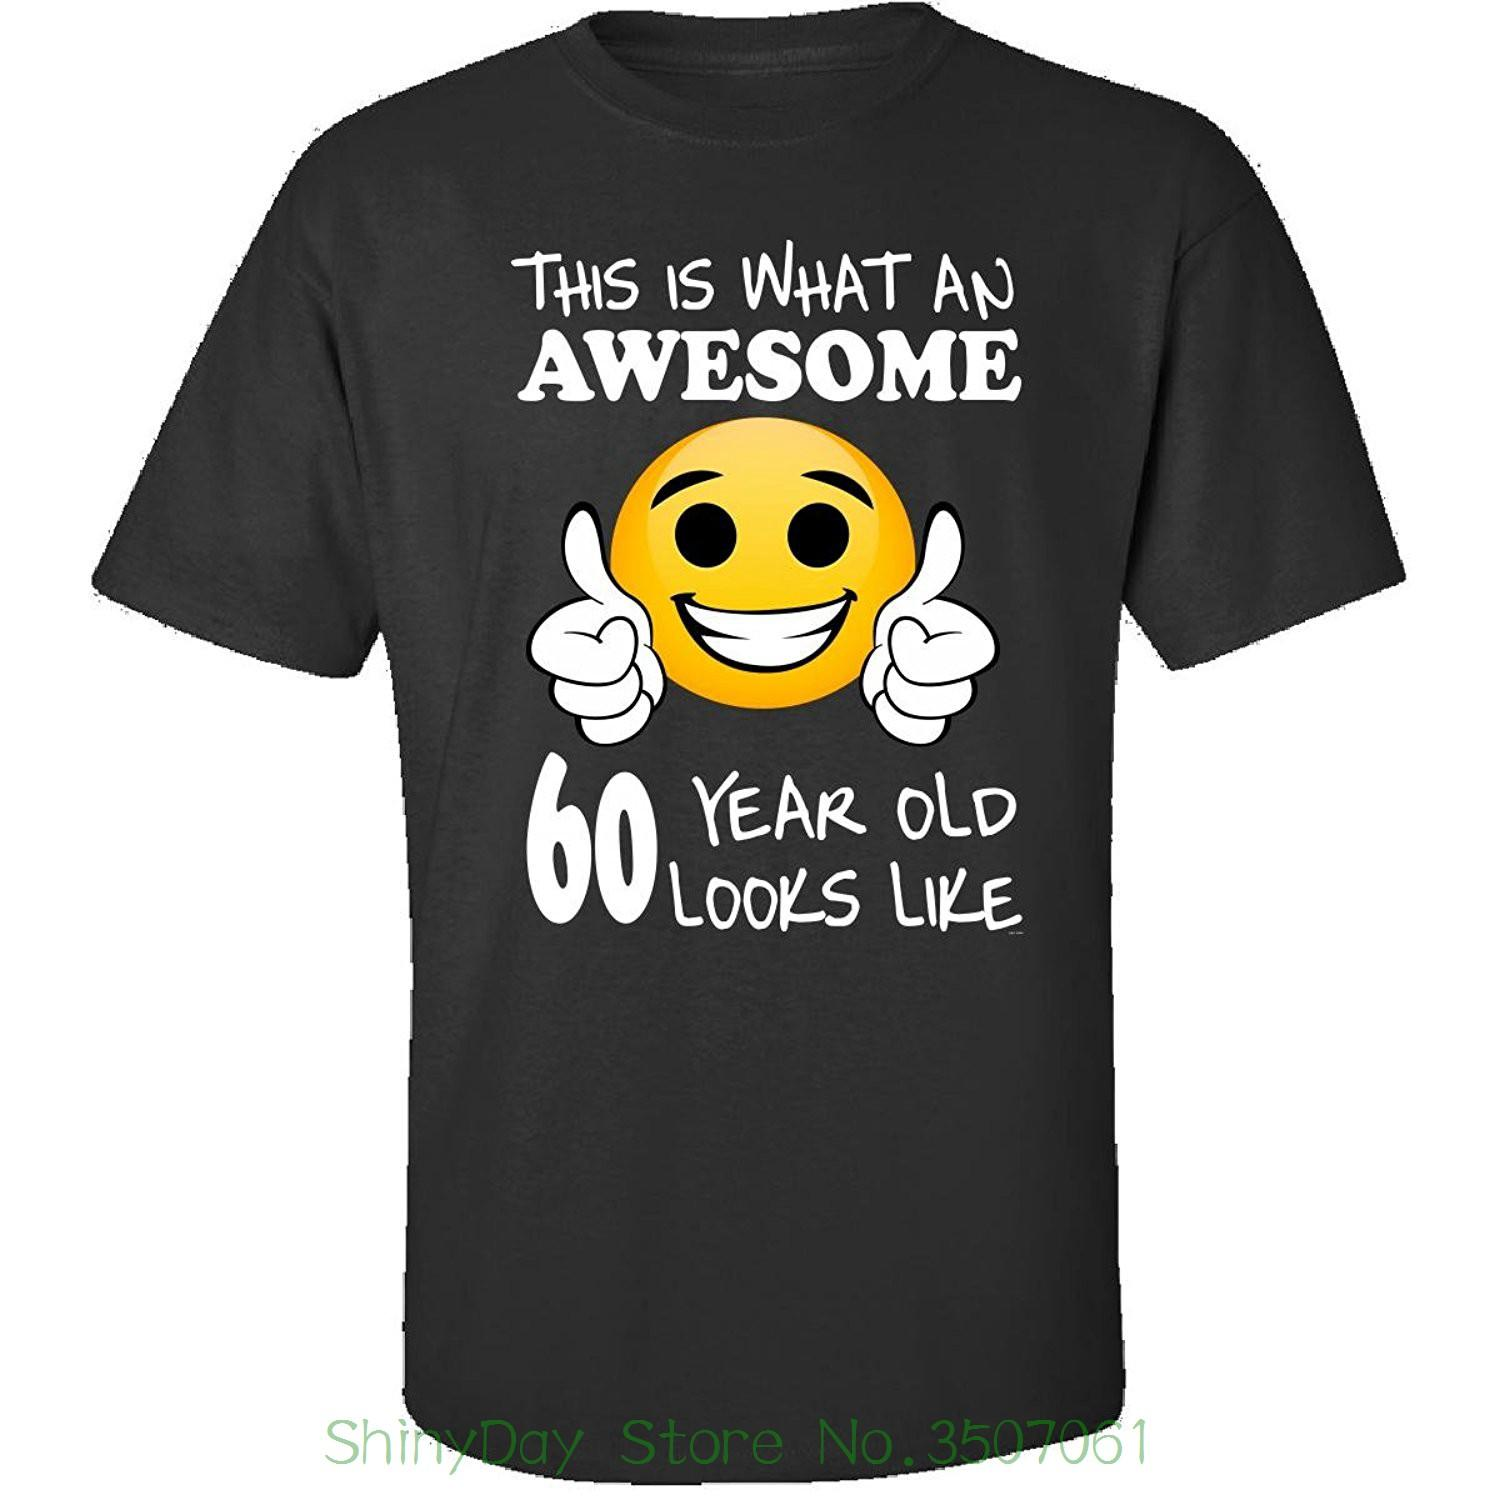 Tops Summer Cool Funny T Shirt Emoji Birthday 60th Presents Men 60 Year Old Gift Adult Casual Shirts With From Shinydaystore